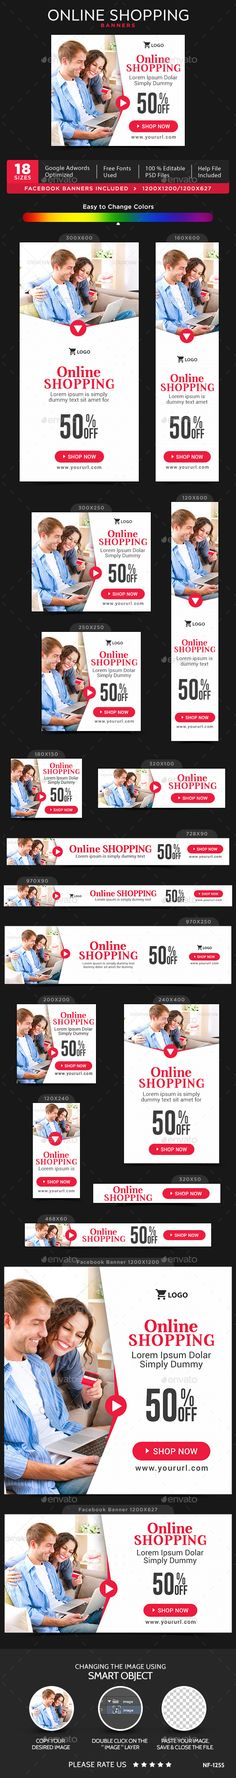 Online Shopping Banners — Photoshop PSD #animated banner #banners • Available here → https://graphicriver.net/item/online-shopping-banners/15929915?ref=pxcr